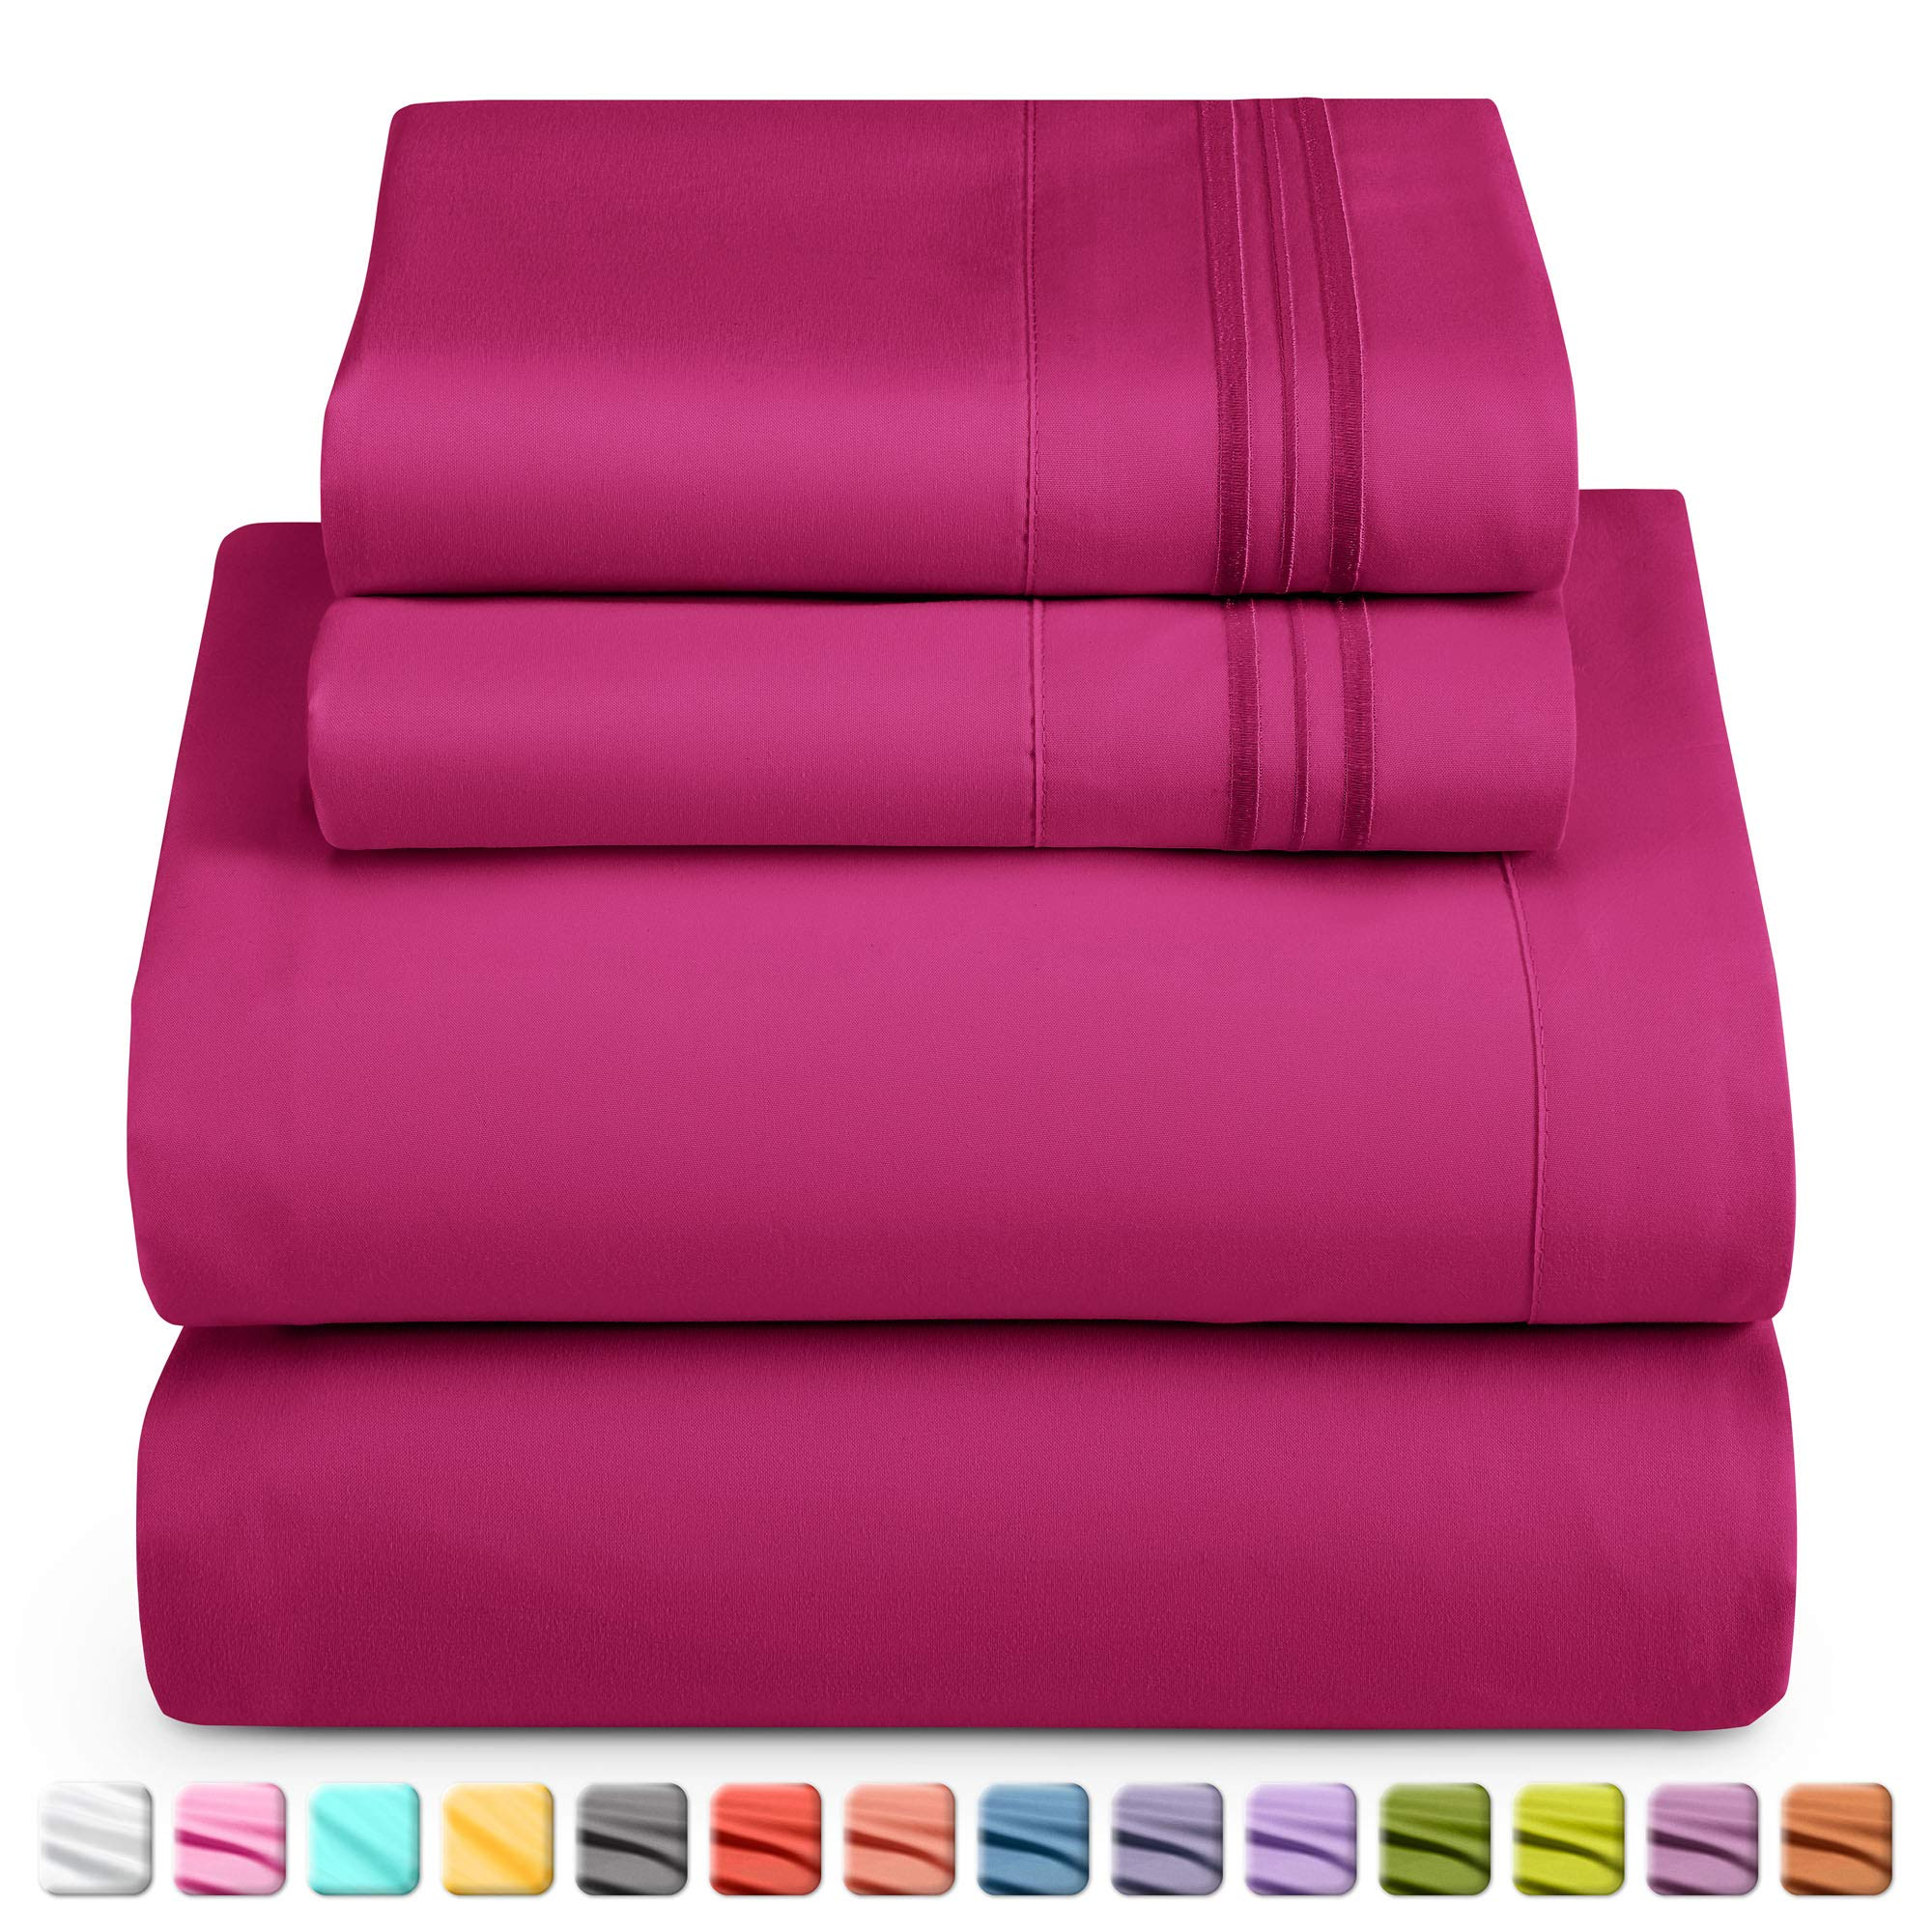 Nestl Deep Pocket Twin XL Sheets: Twin XL Size Bed Sheets with Fitted and Flat Sheet, Pillow Cases - Extra Soft Microfiber Bedsheet Set with Deep Pockets for Twin XL Sized Mattress - Vivacious Magenta